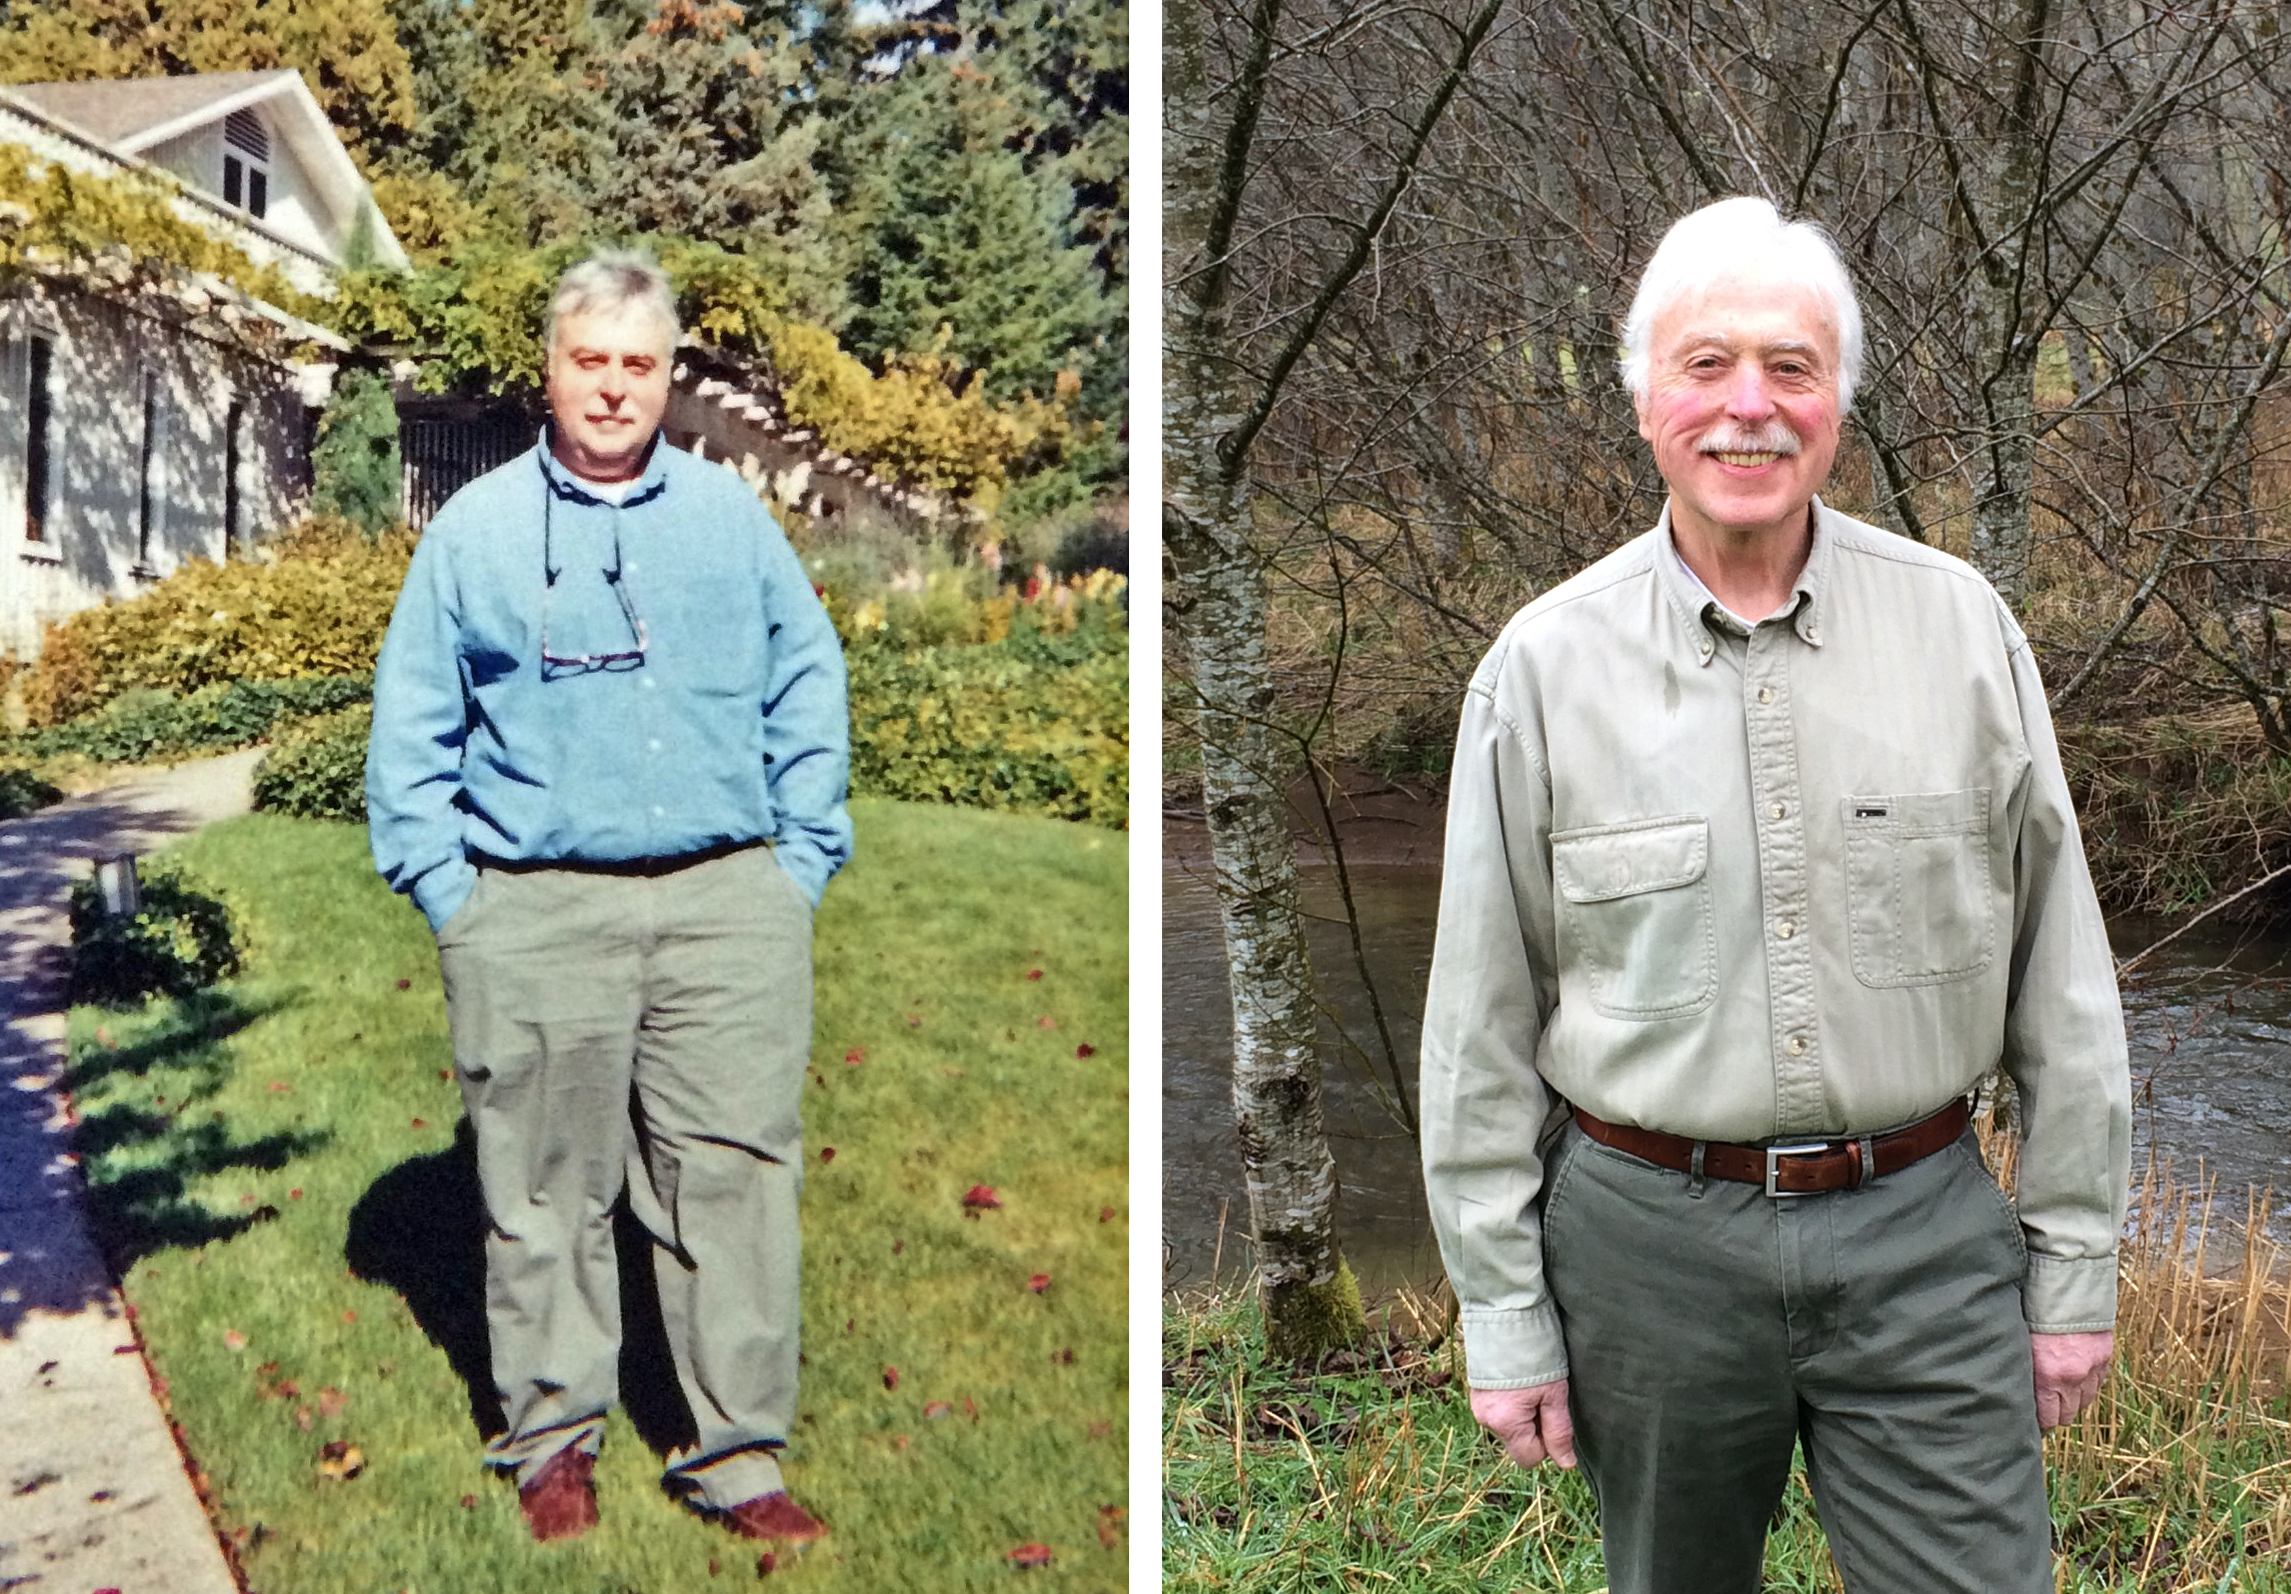 Don Speranza (left) in 2003, and after losing weight, in 2018.